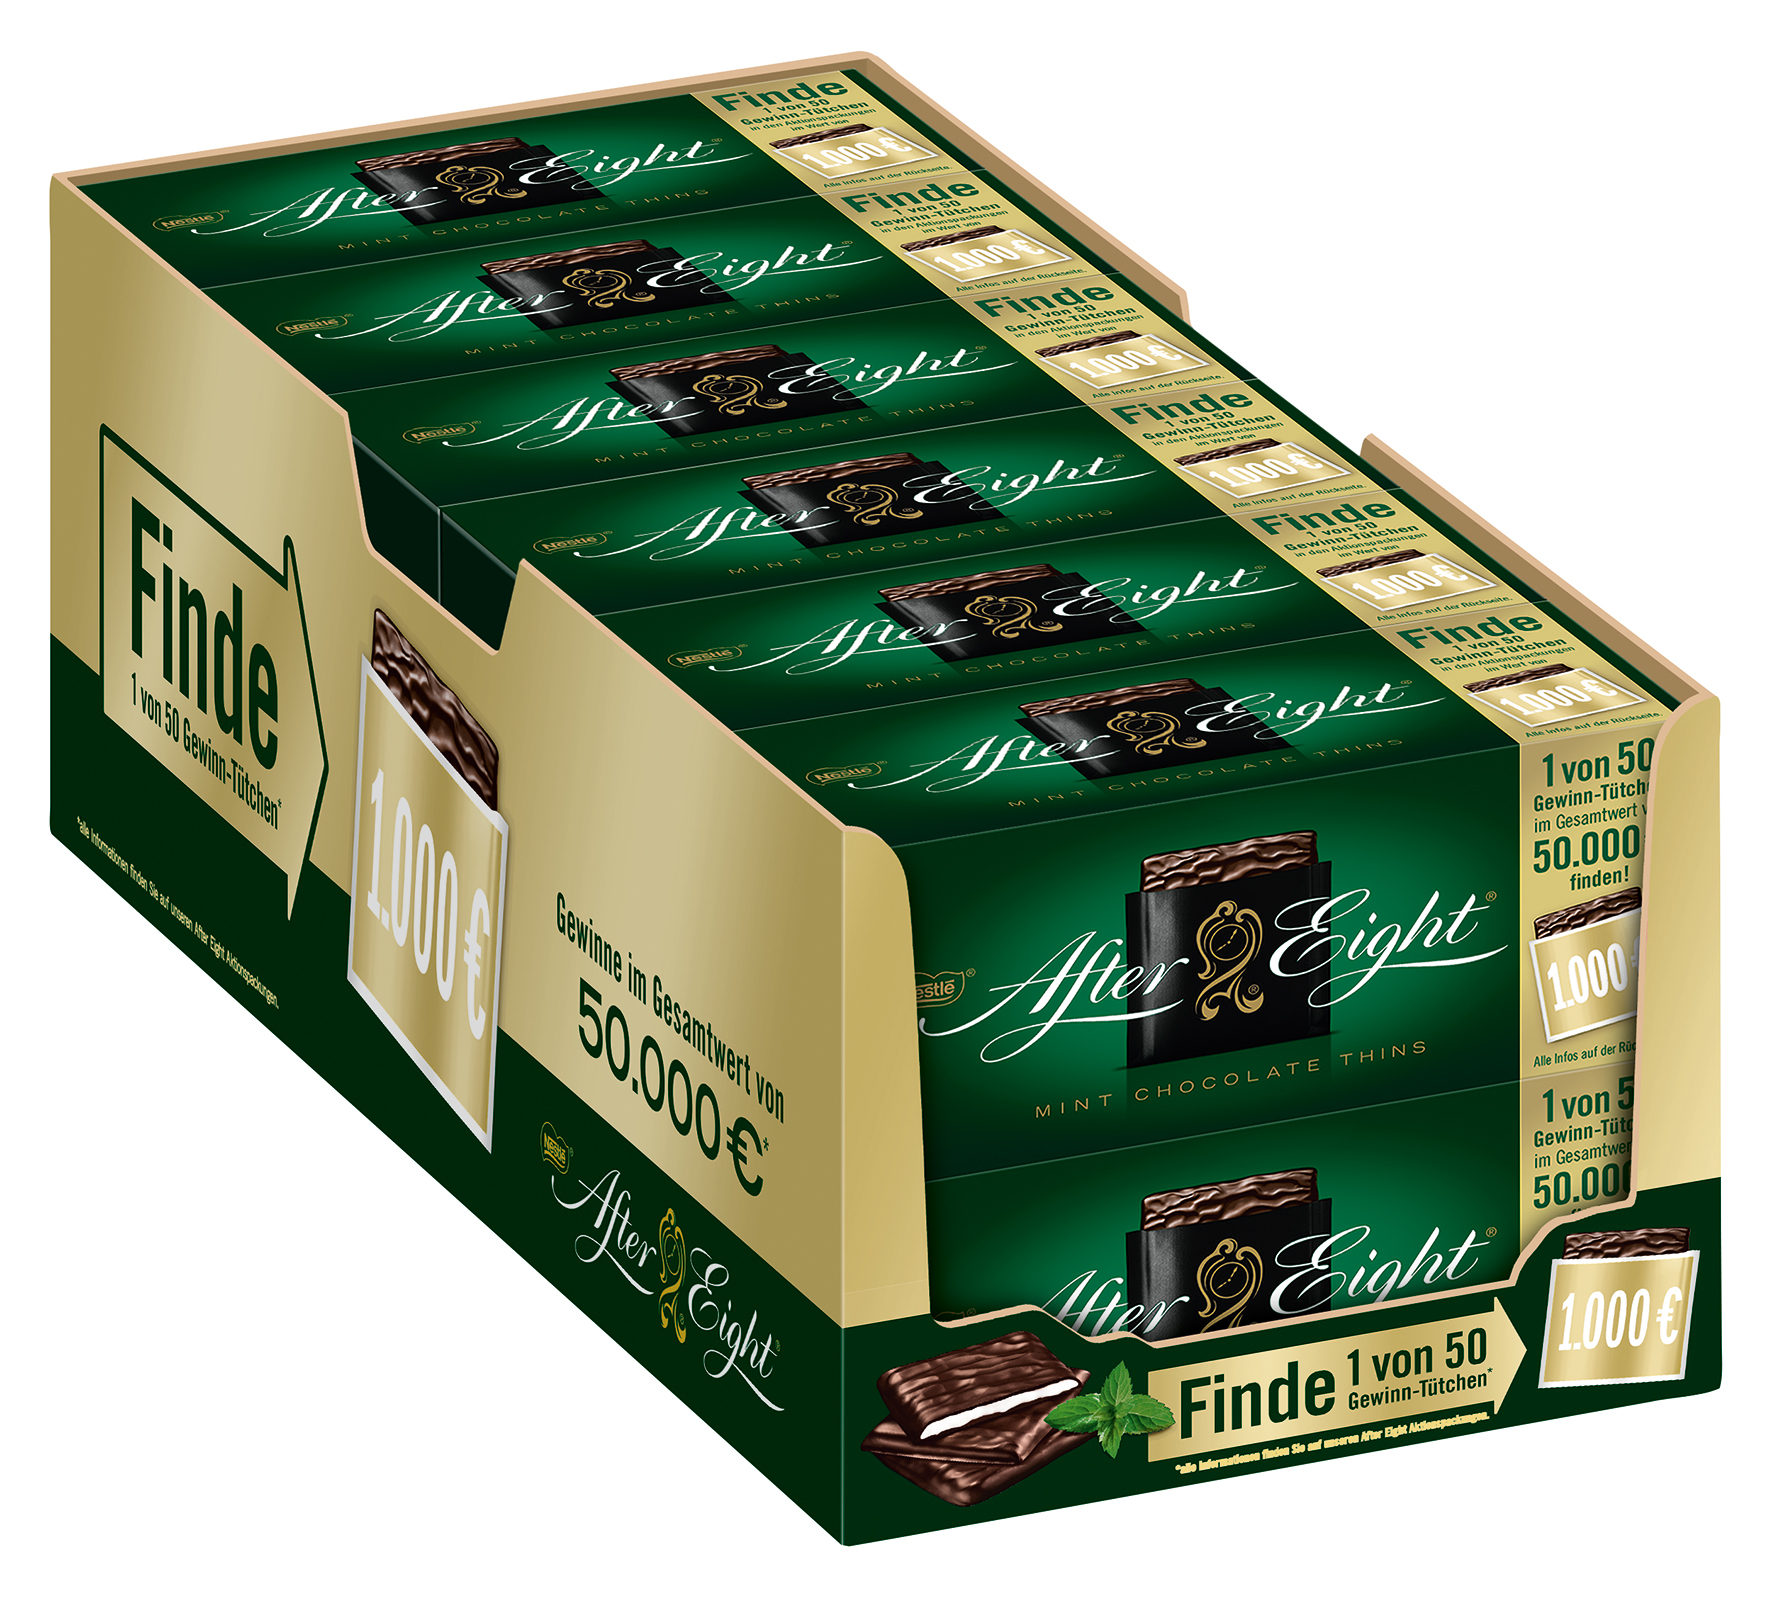 After Eight Display